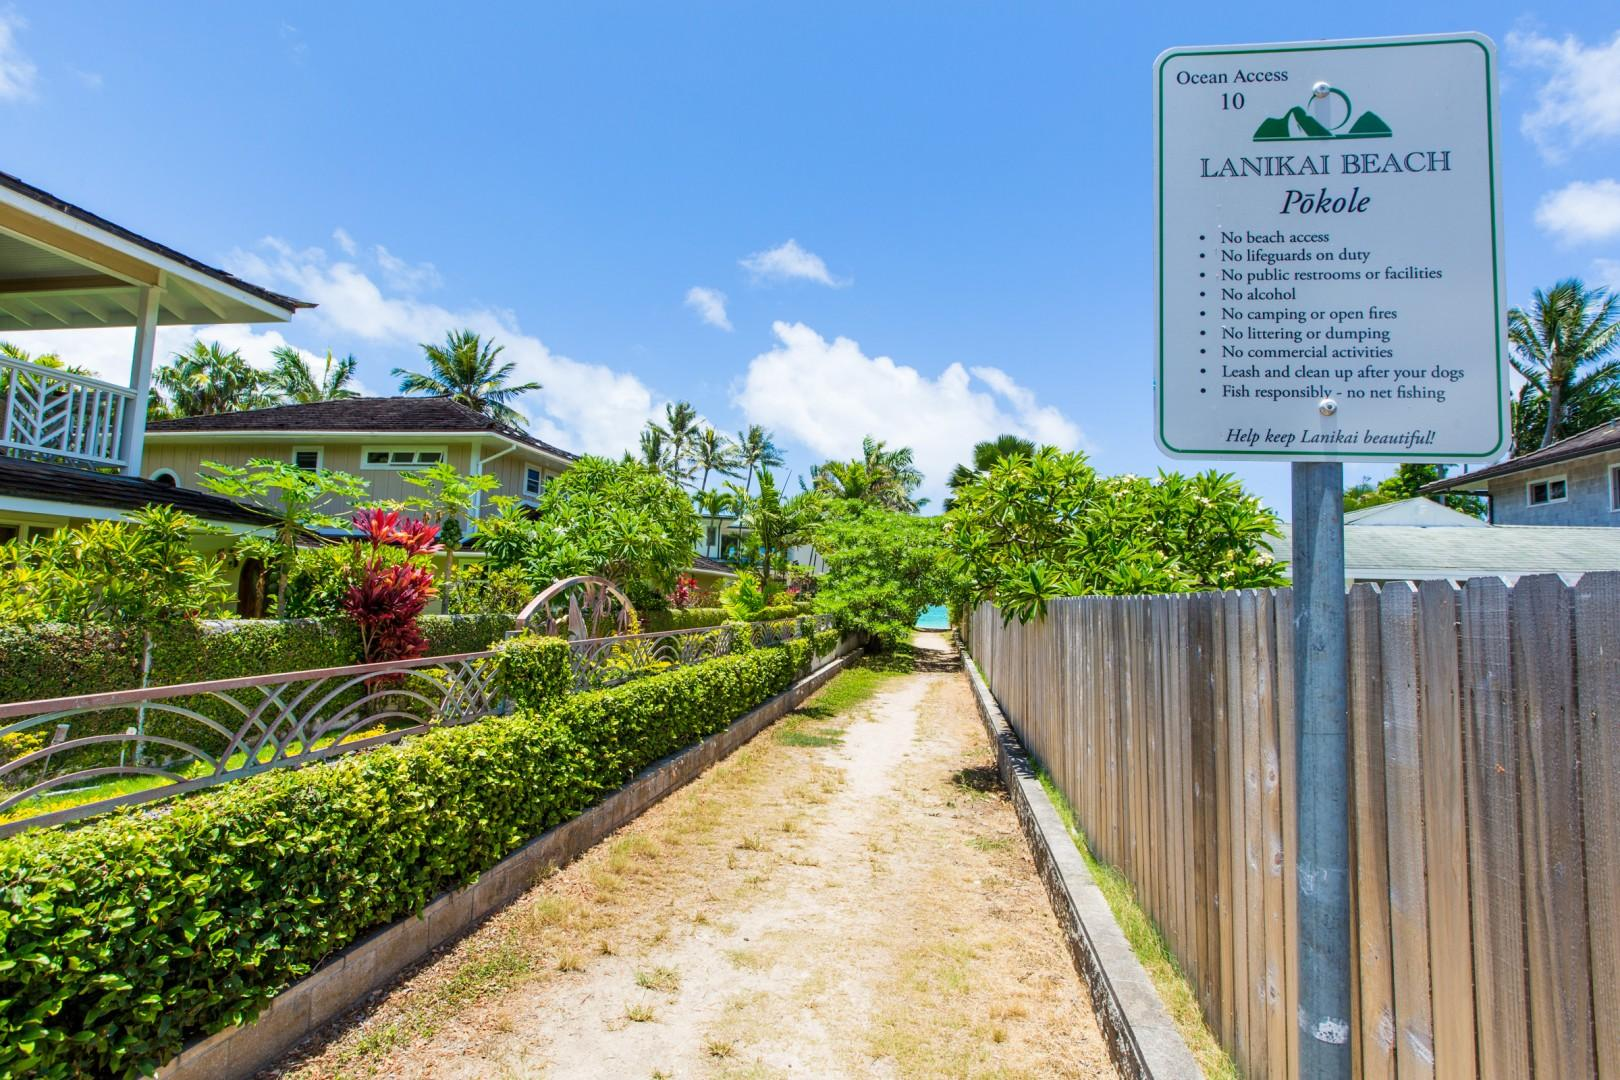 The Pokole access to Lanikai Beach is only 0.1 miles (a two-minute walk) from the house!